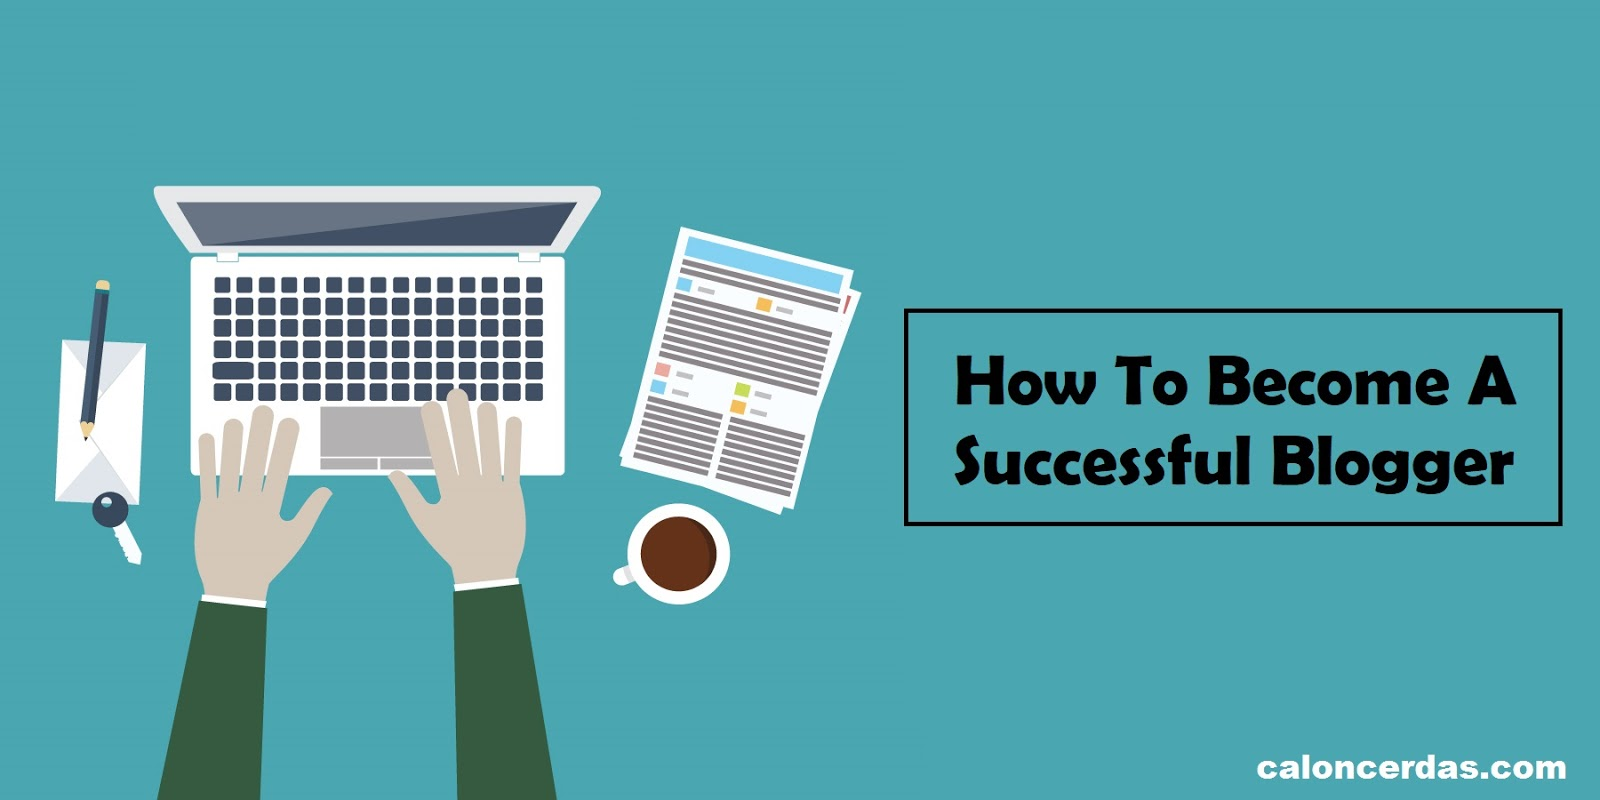 10 Tips To Become a Successful Blogger